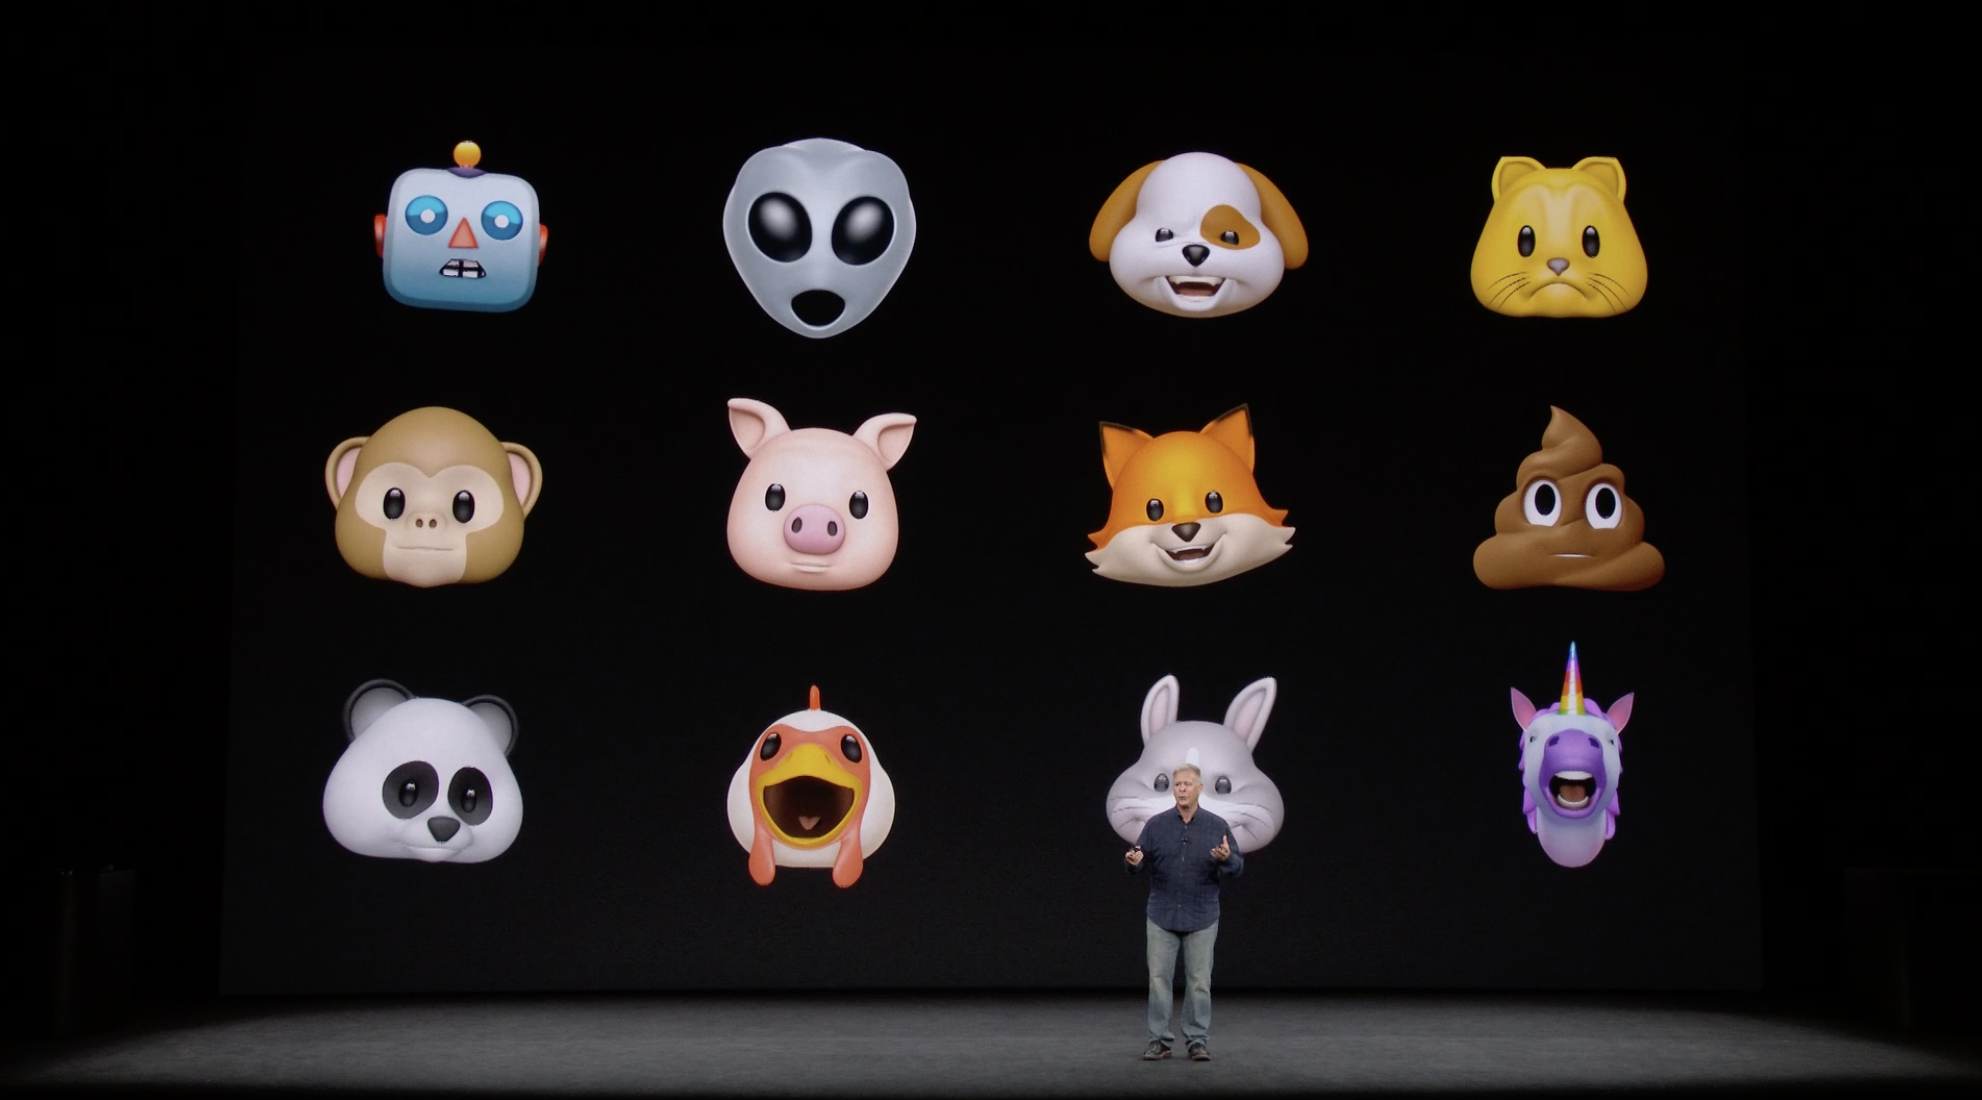 New Animojis that will be available with the iPhone X